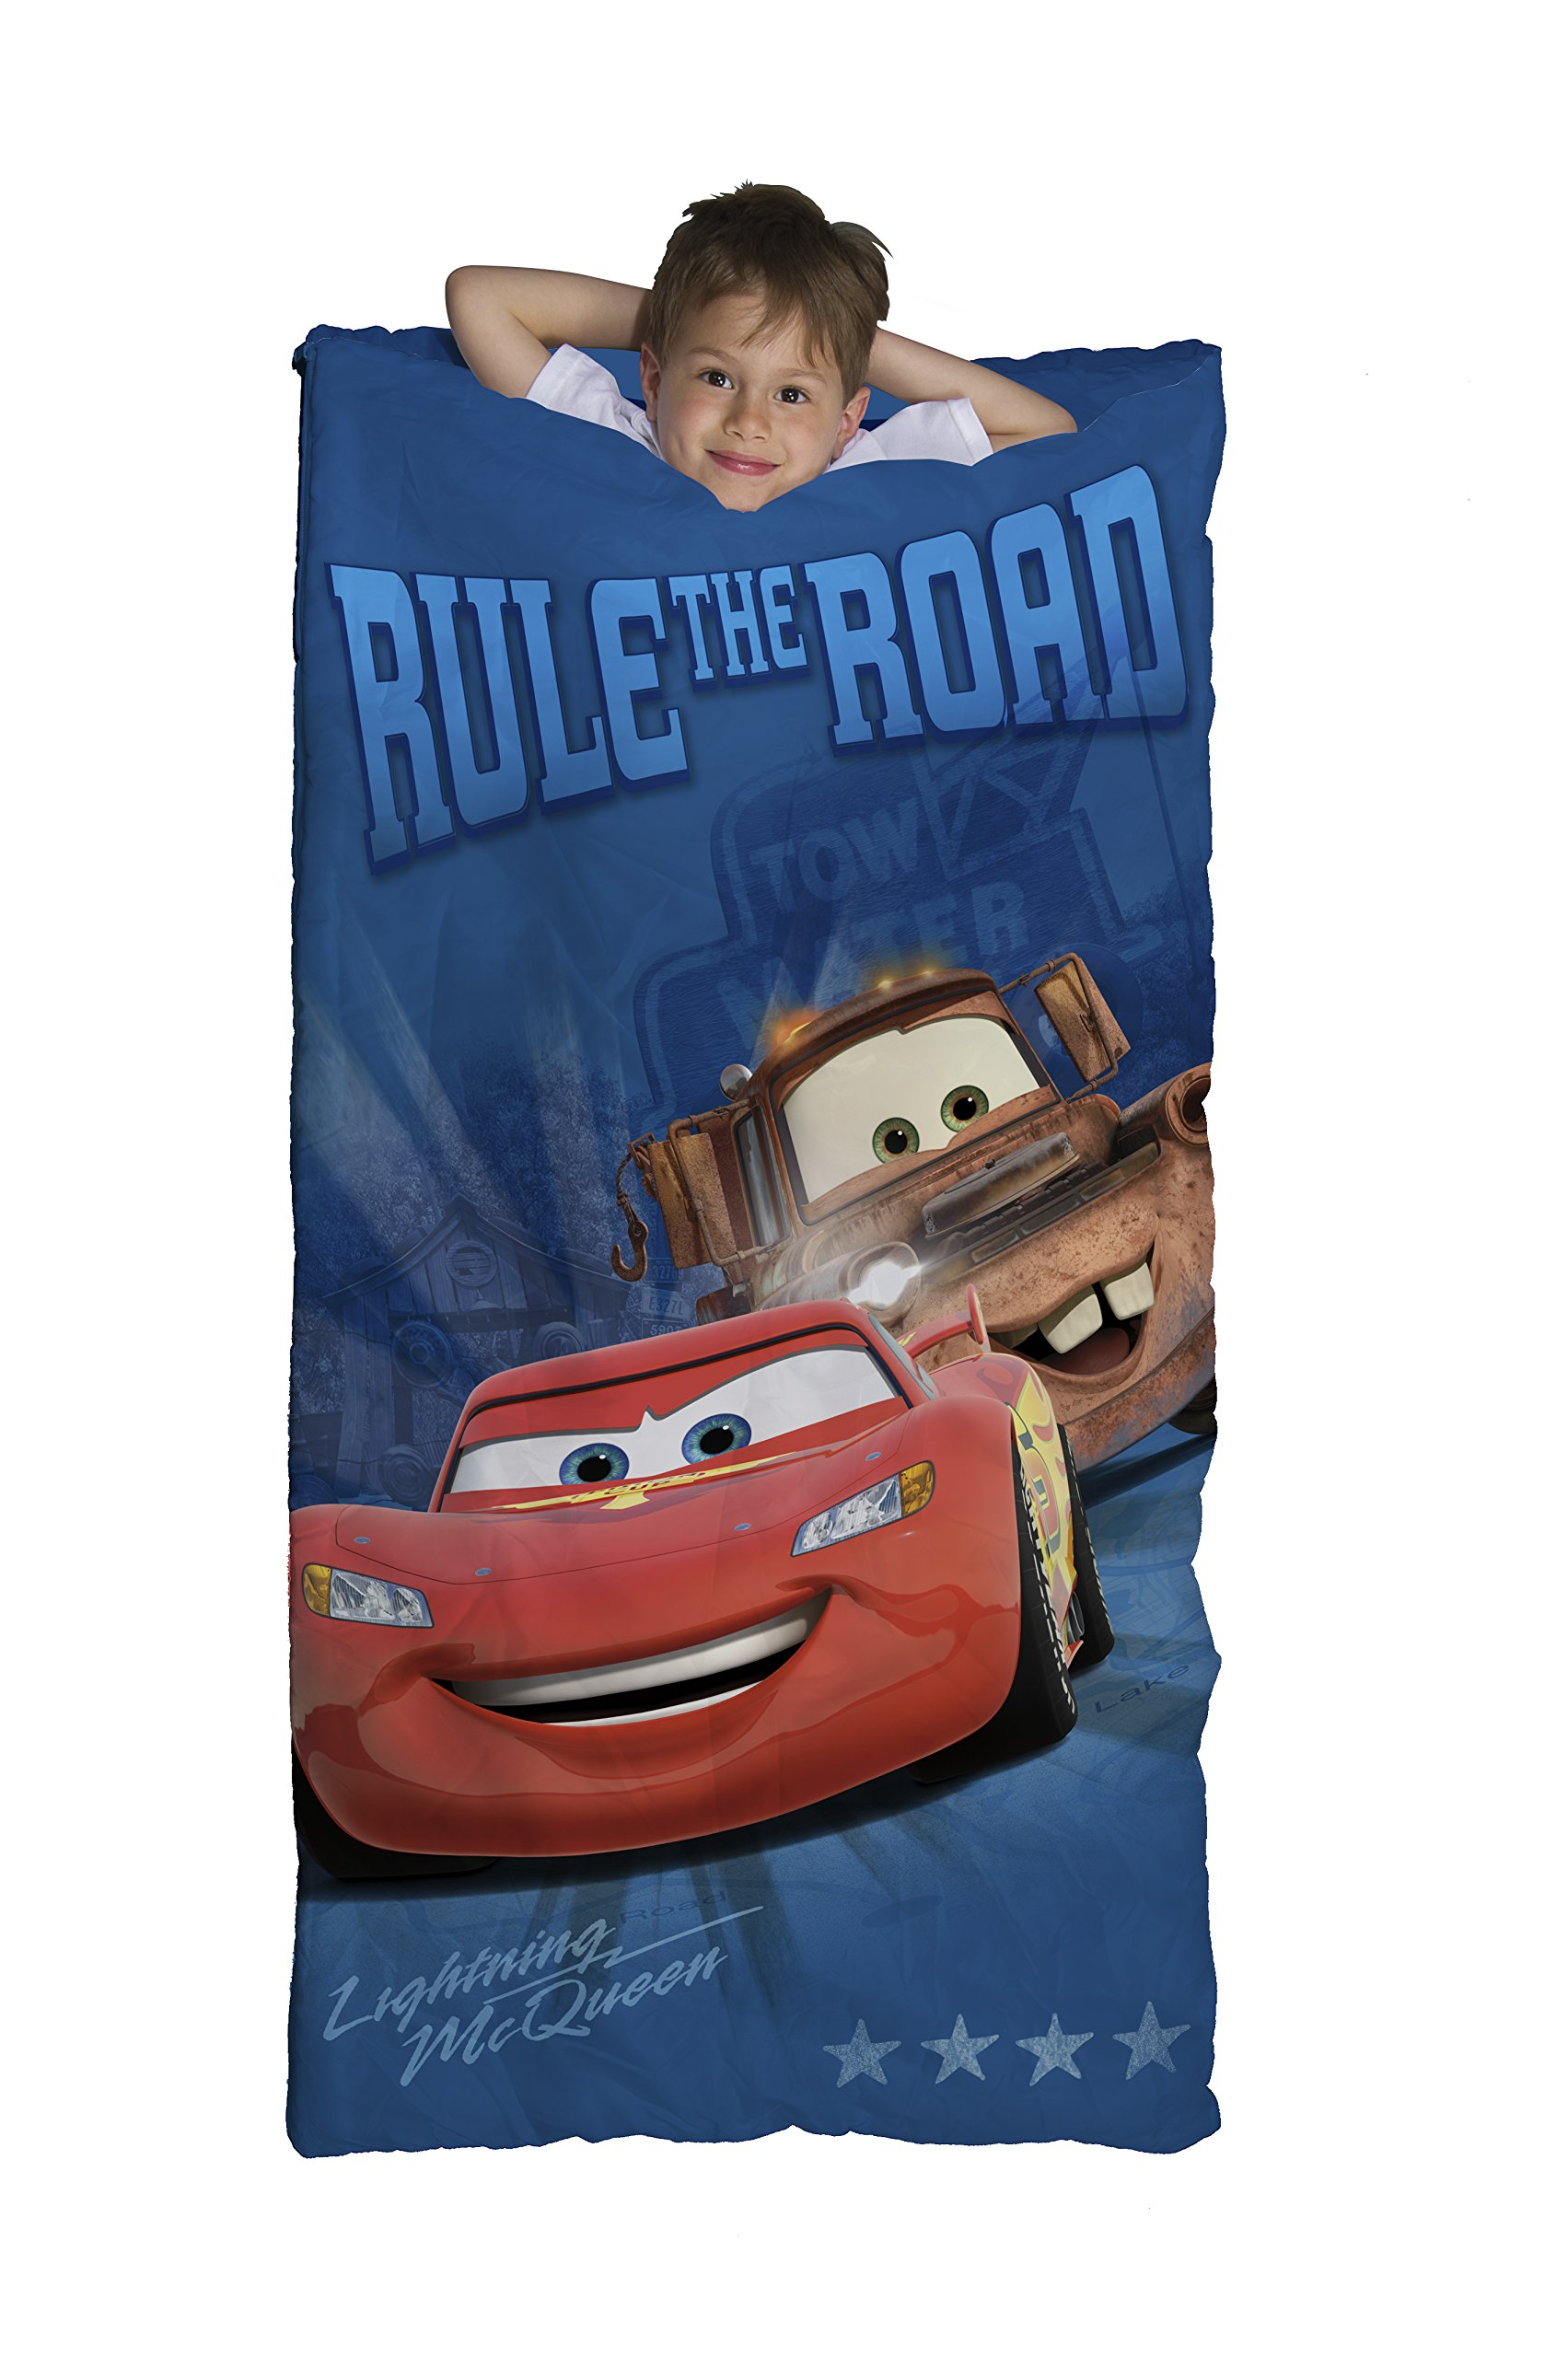 Disney/Pixar Cars Rule The Road McQueen & Mater Blue 30'' x 54'' Slumber Bag, Matching Carry Bag Included (Official Disney/Pixar Product)